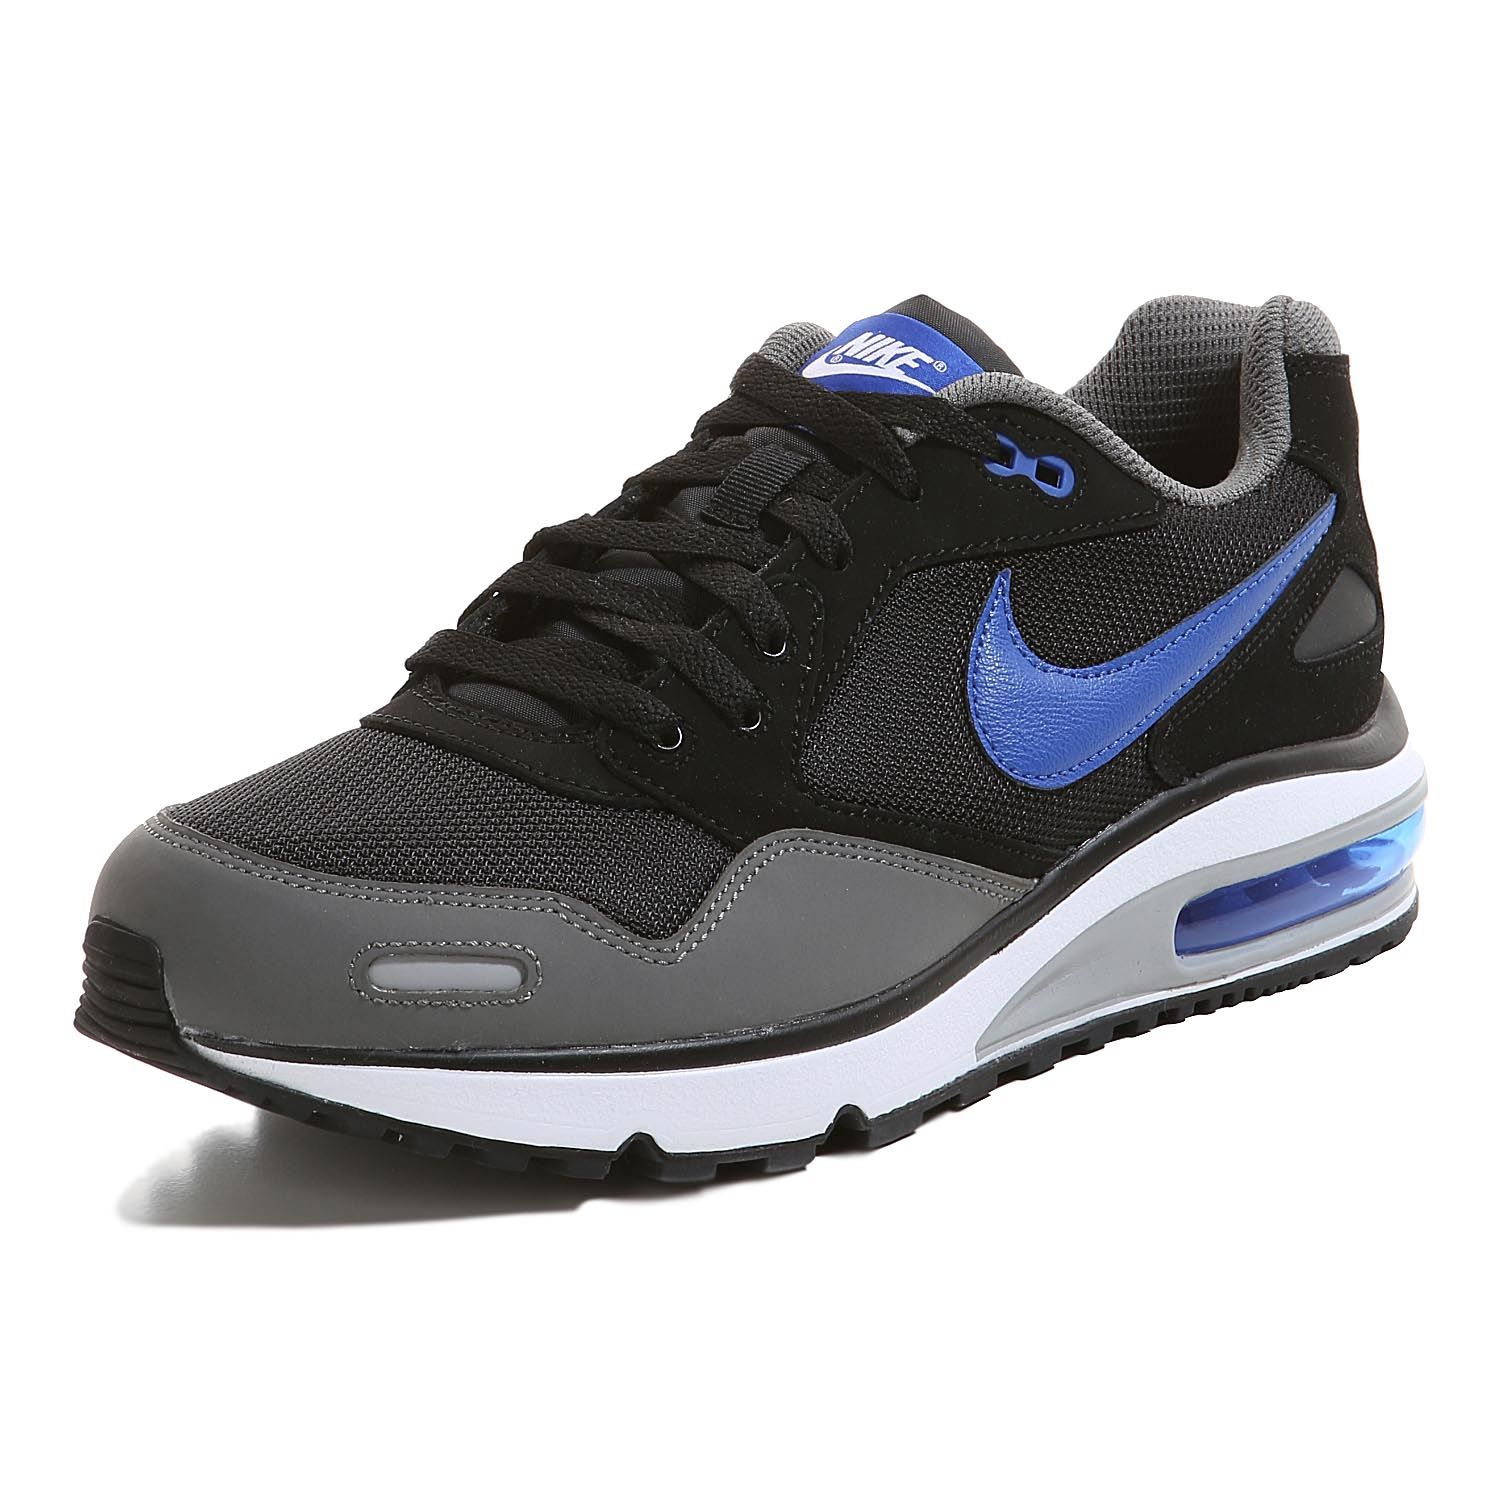 Nike | AIR MAX DIRECT Sneaker Low Herren | schwarz grau blau